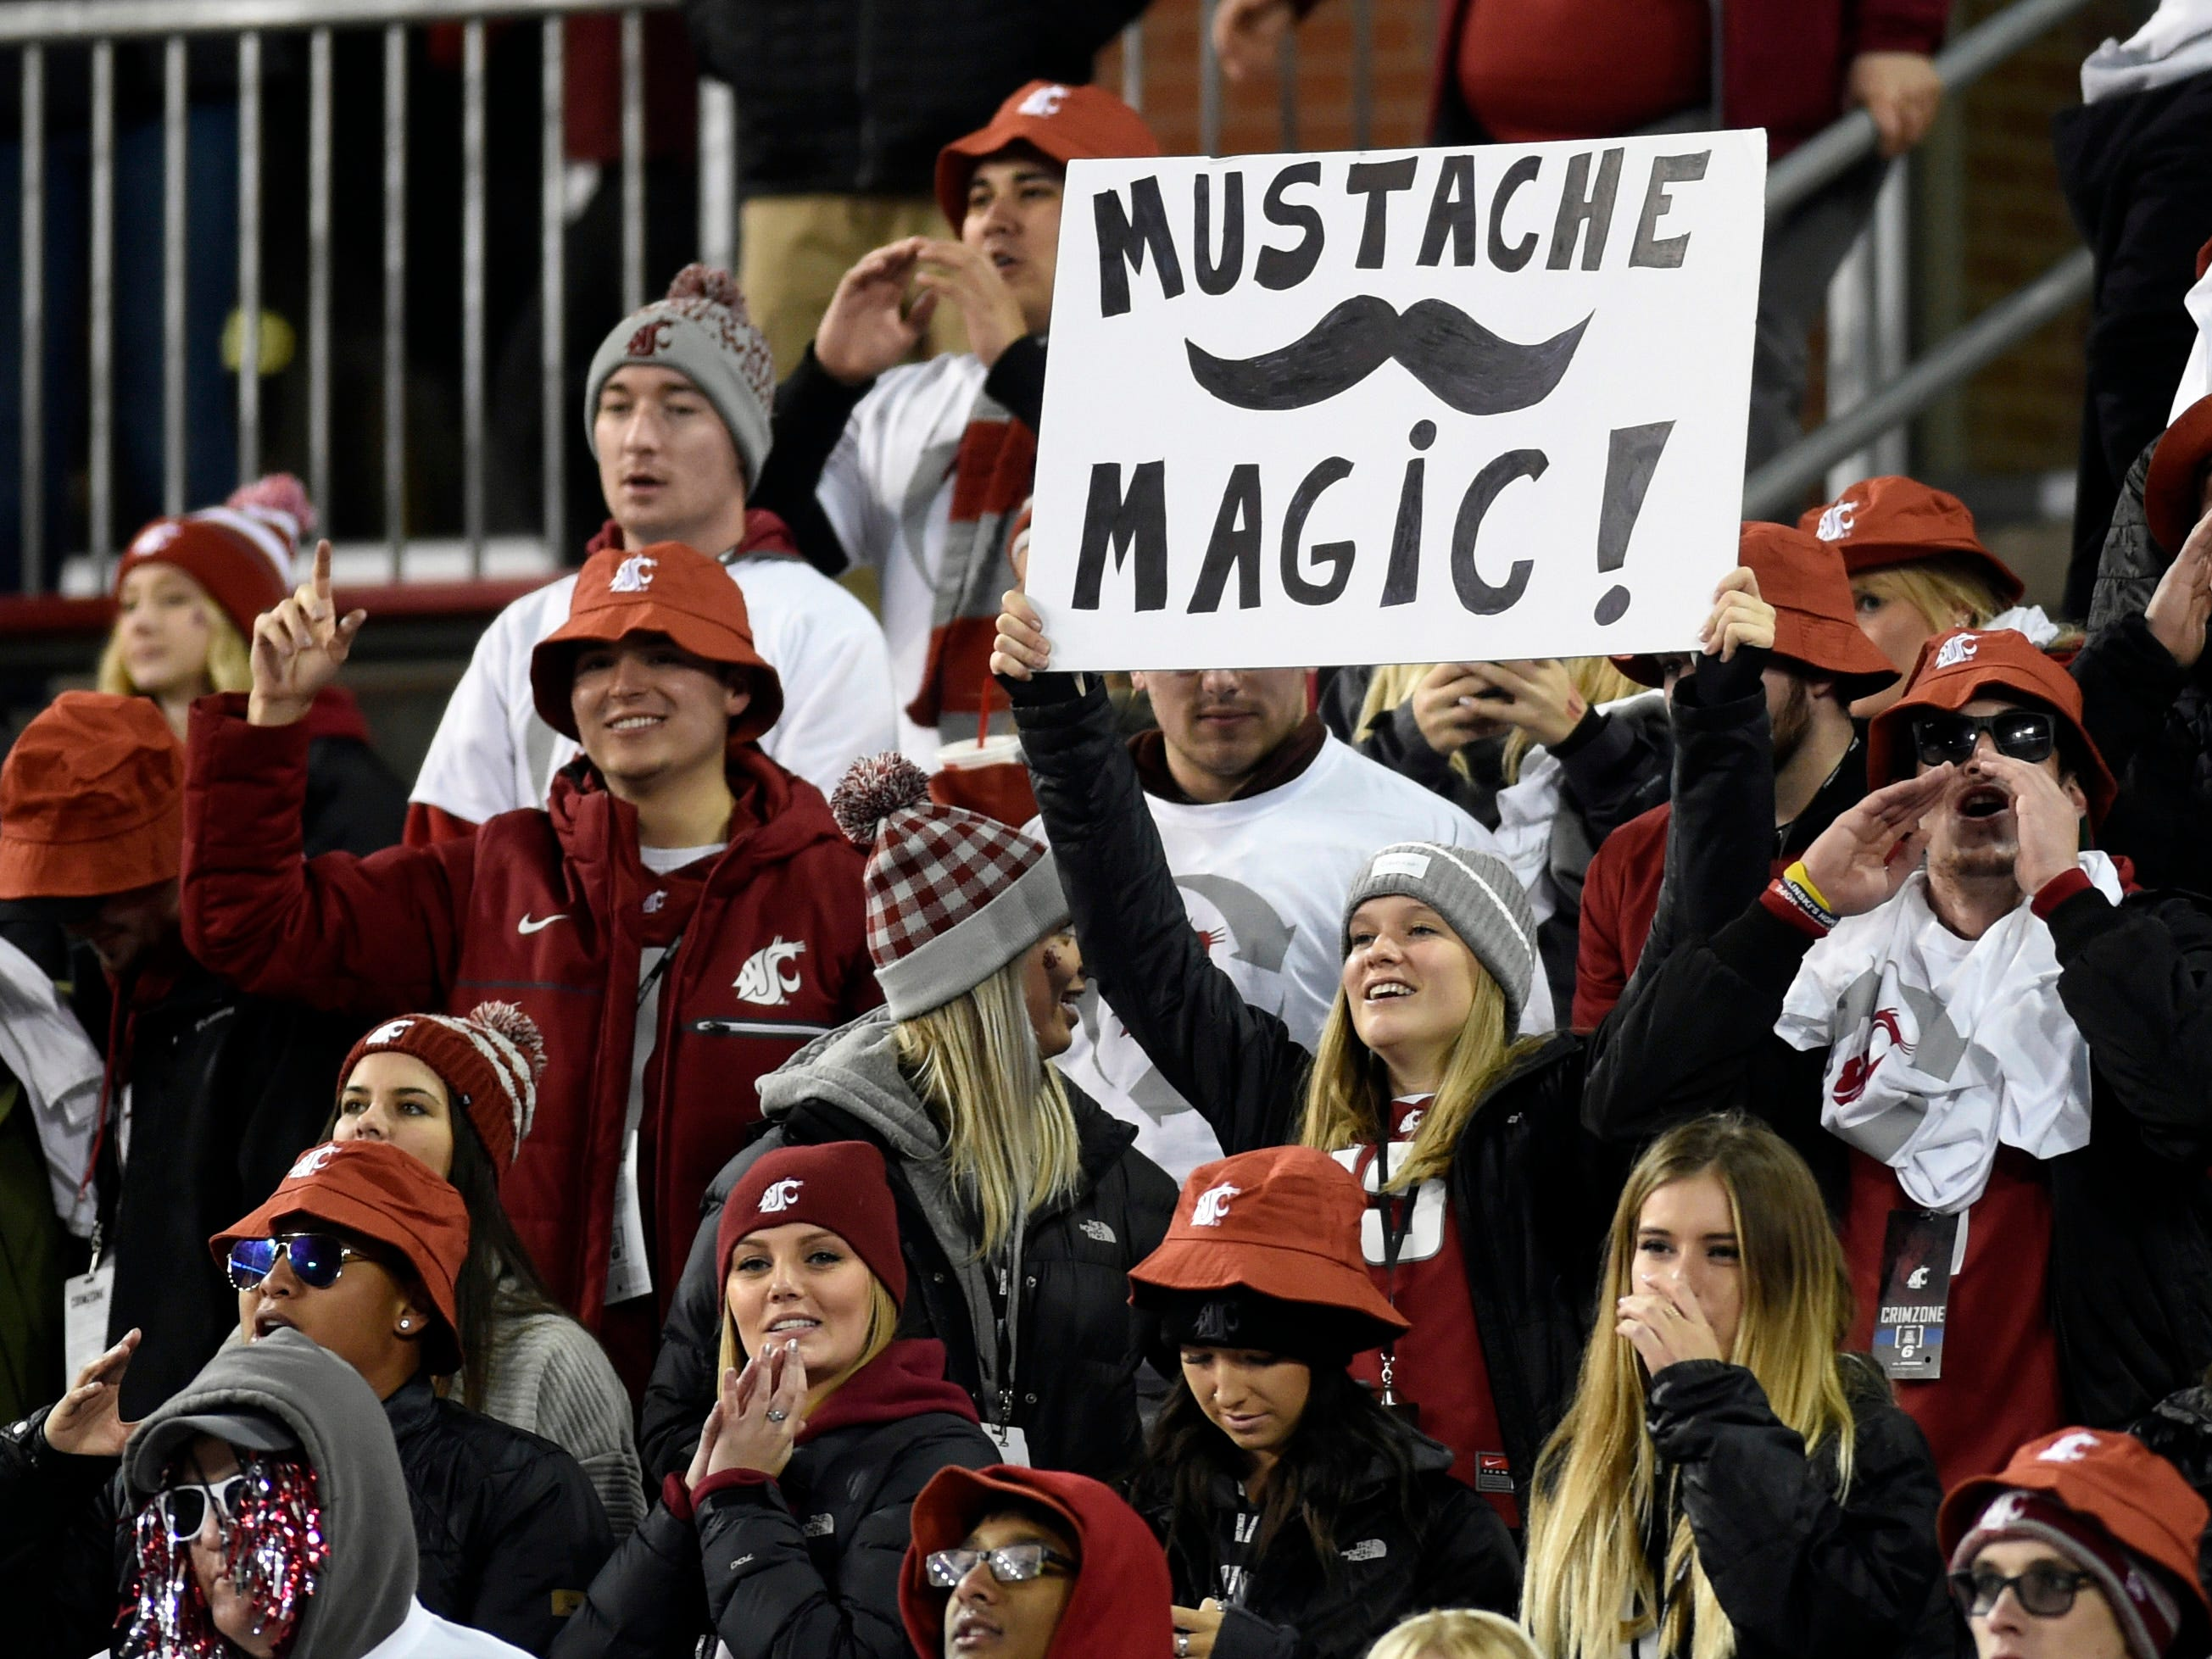 Nov 17, 2018; Pullman, WA, USA; Washington State Cougars students holds up a sign during a football game against the Arizona Wildcats in the first half at Martin Stadium. Mandatory Credit: James Snook-USA TODAY Sports